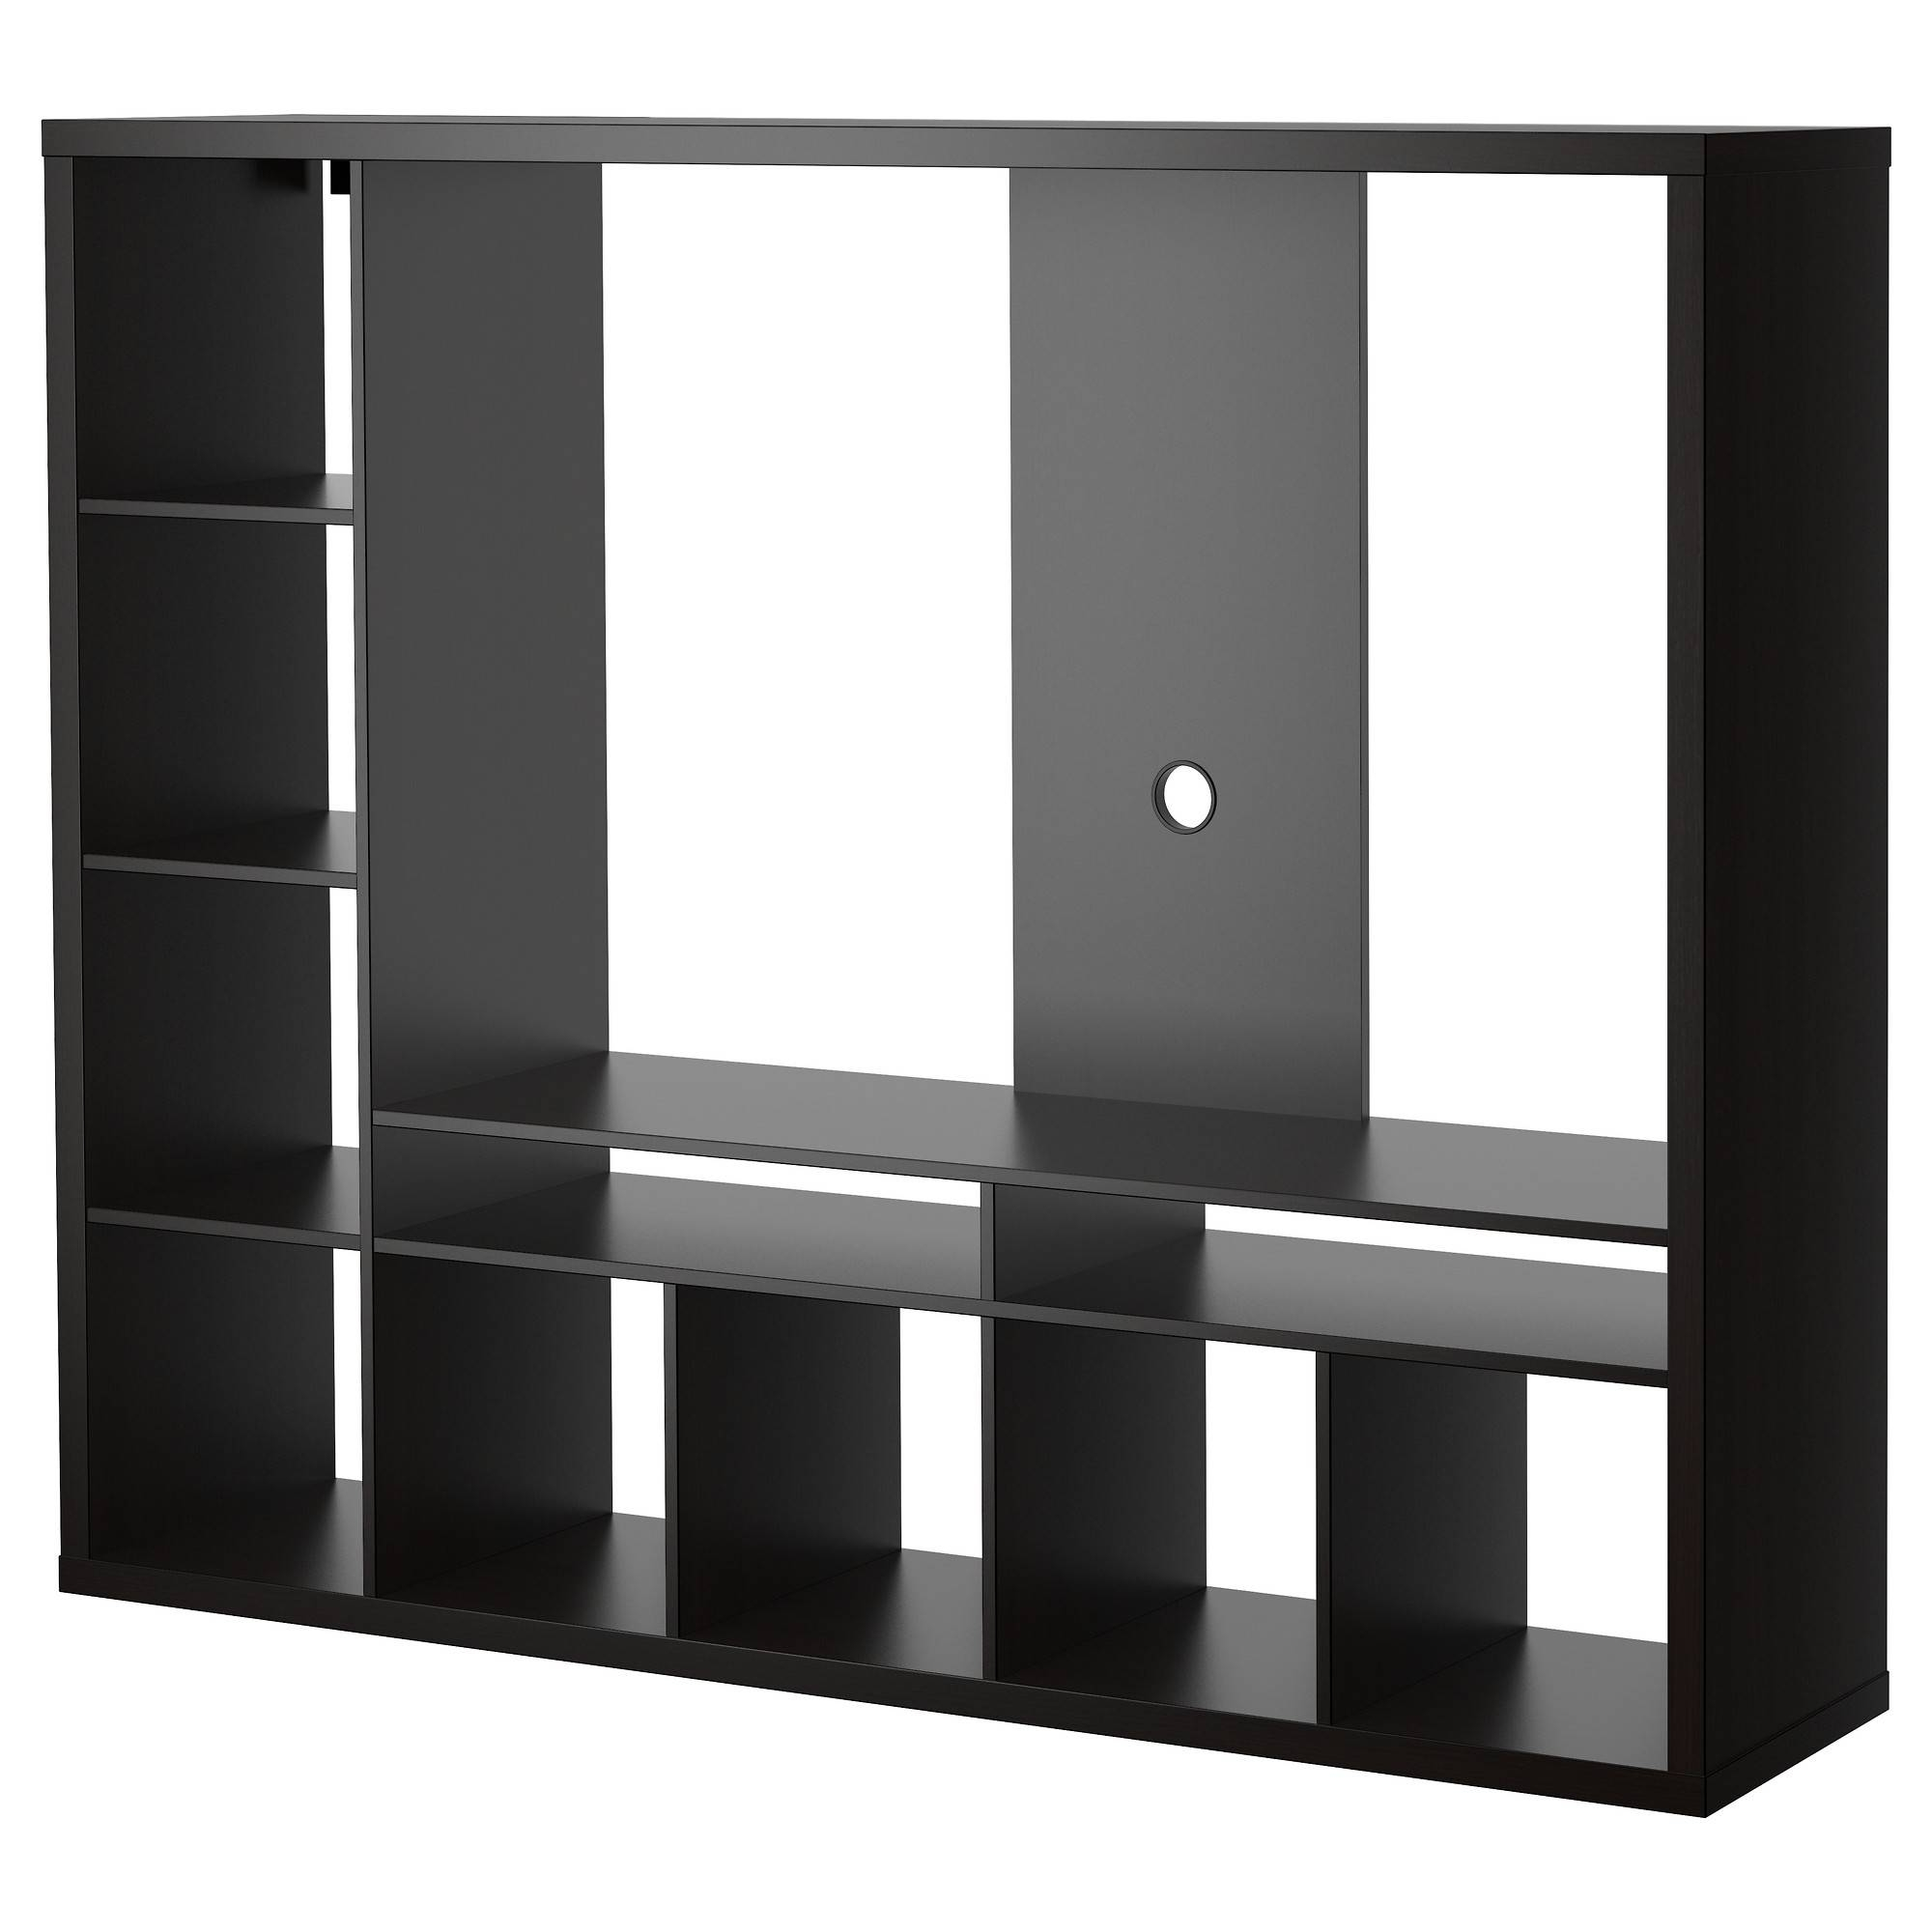 Lappland Tv Storage Unit Black Brown 183x147 Cm – Ikea Within Large Black Tv Unit (View 8 of 15)